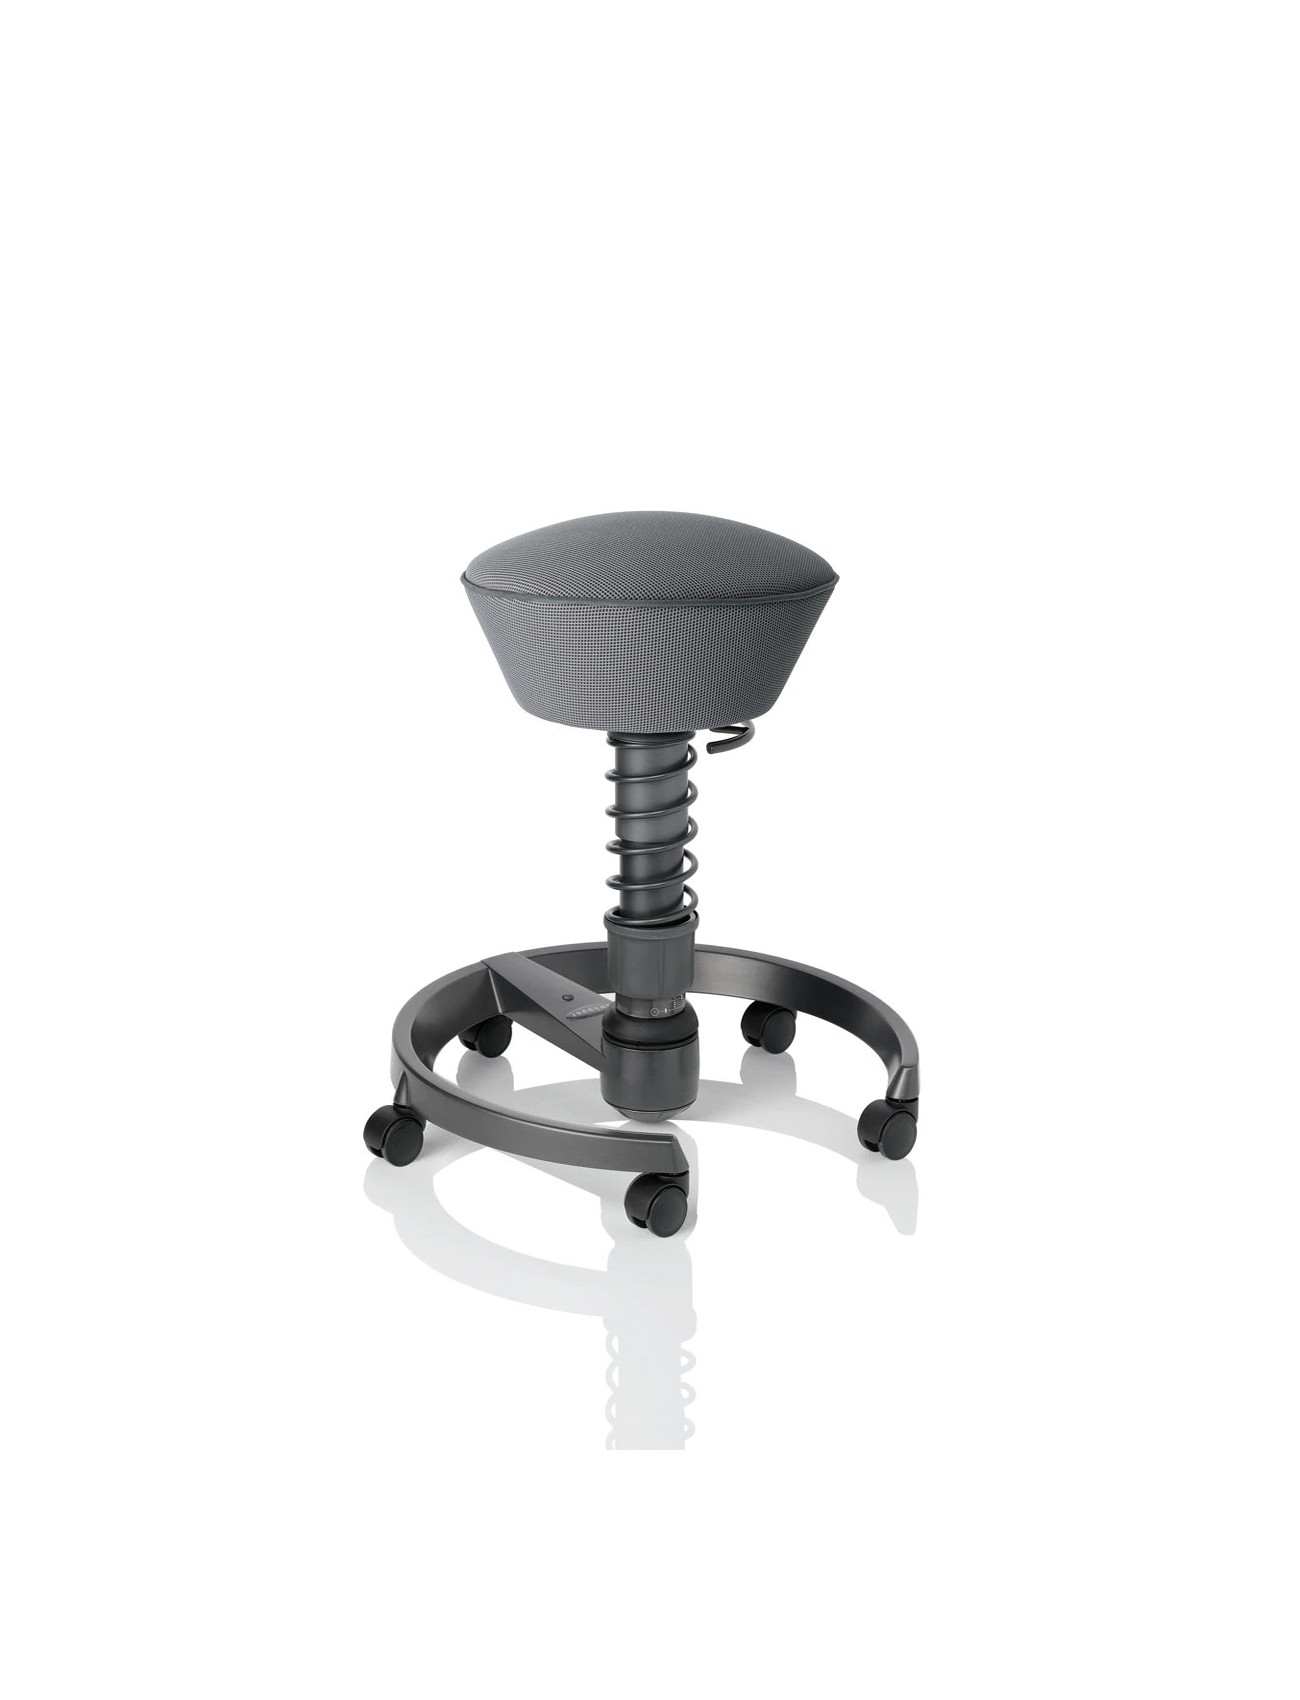 Swopper Air Chair